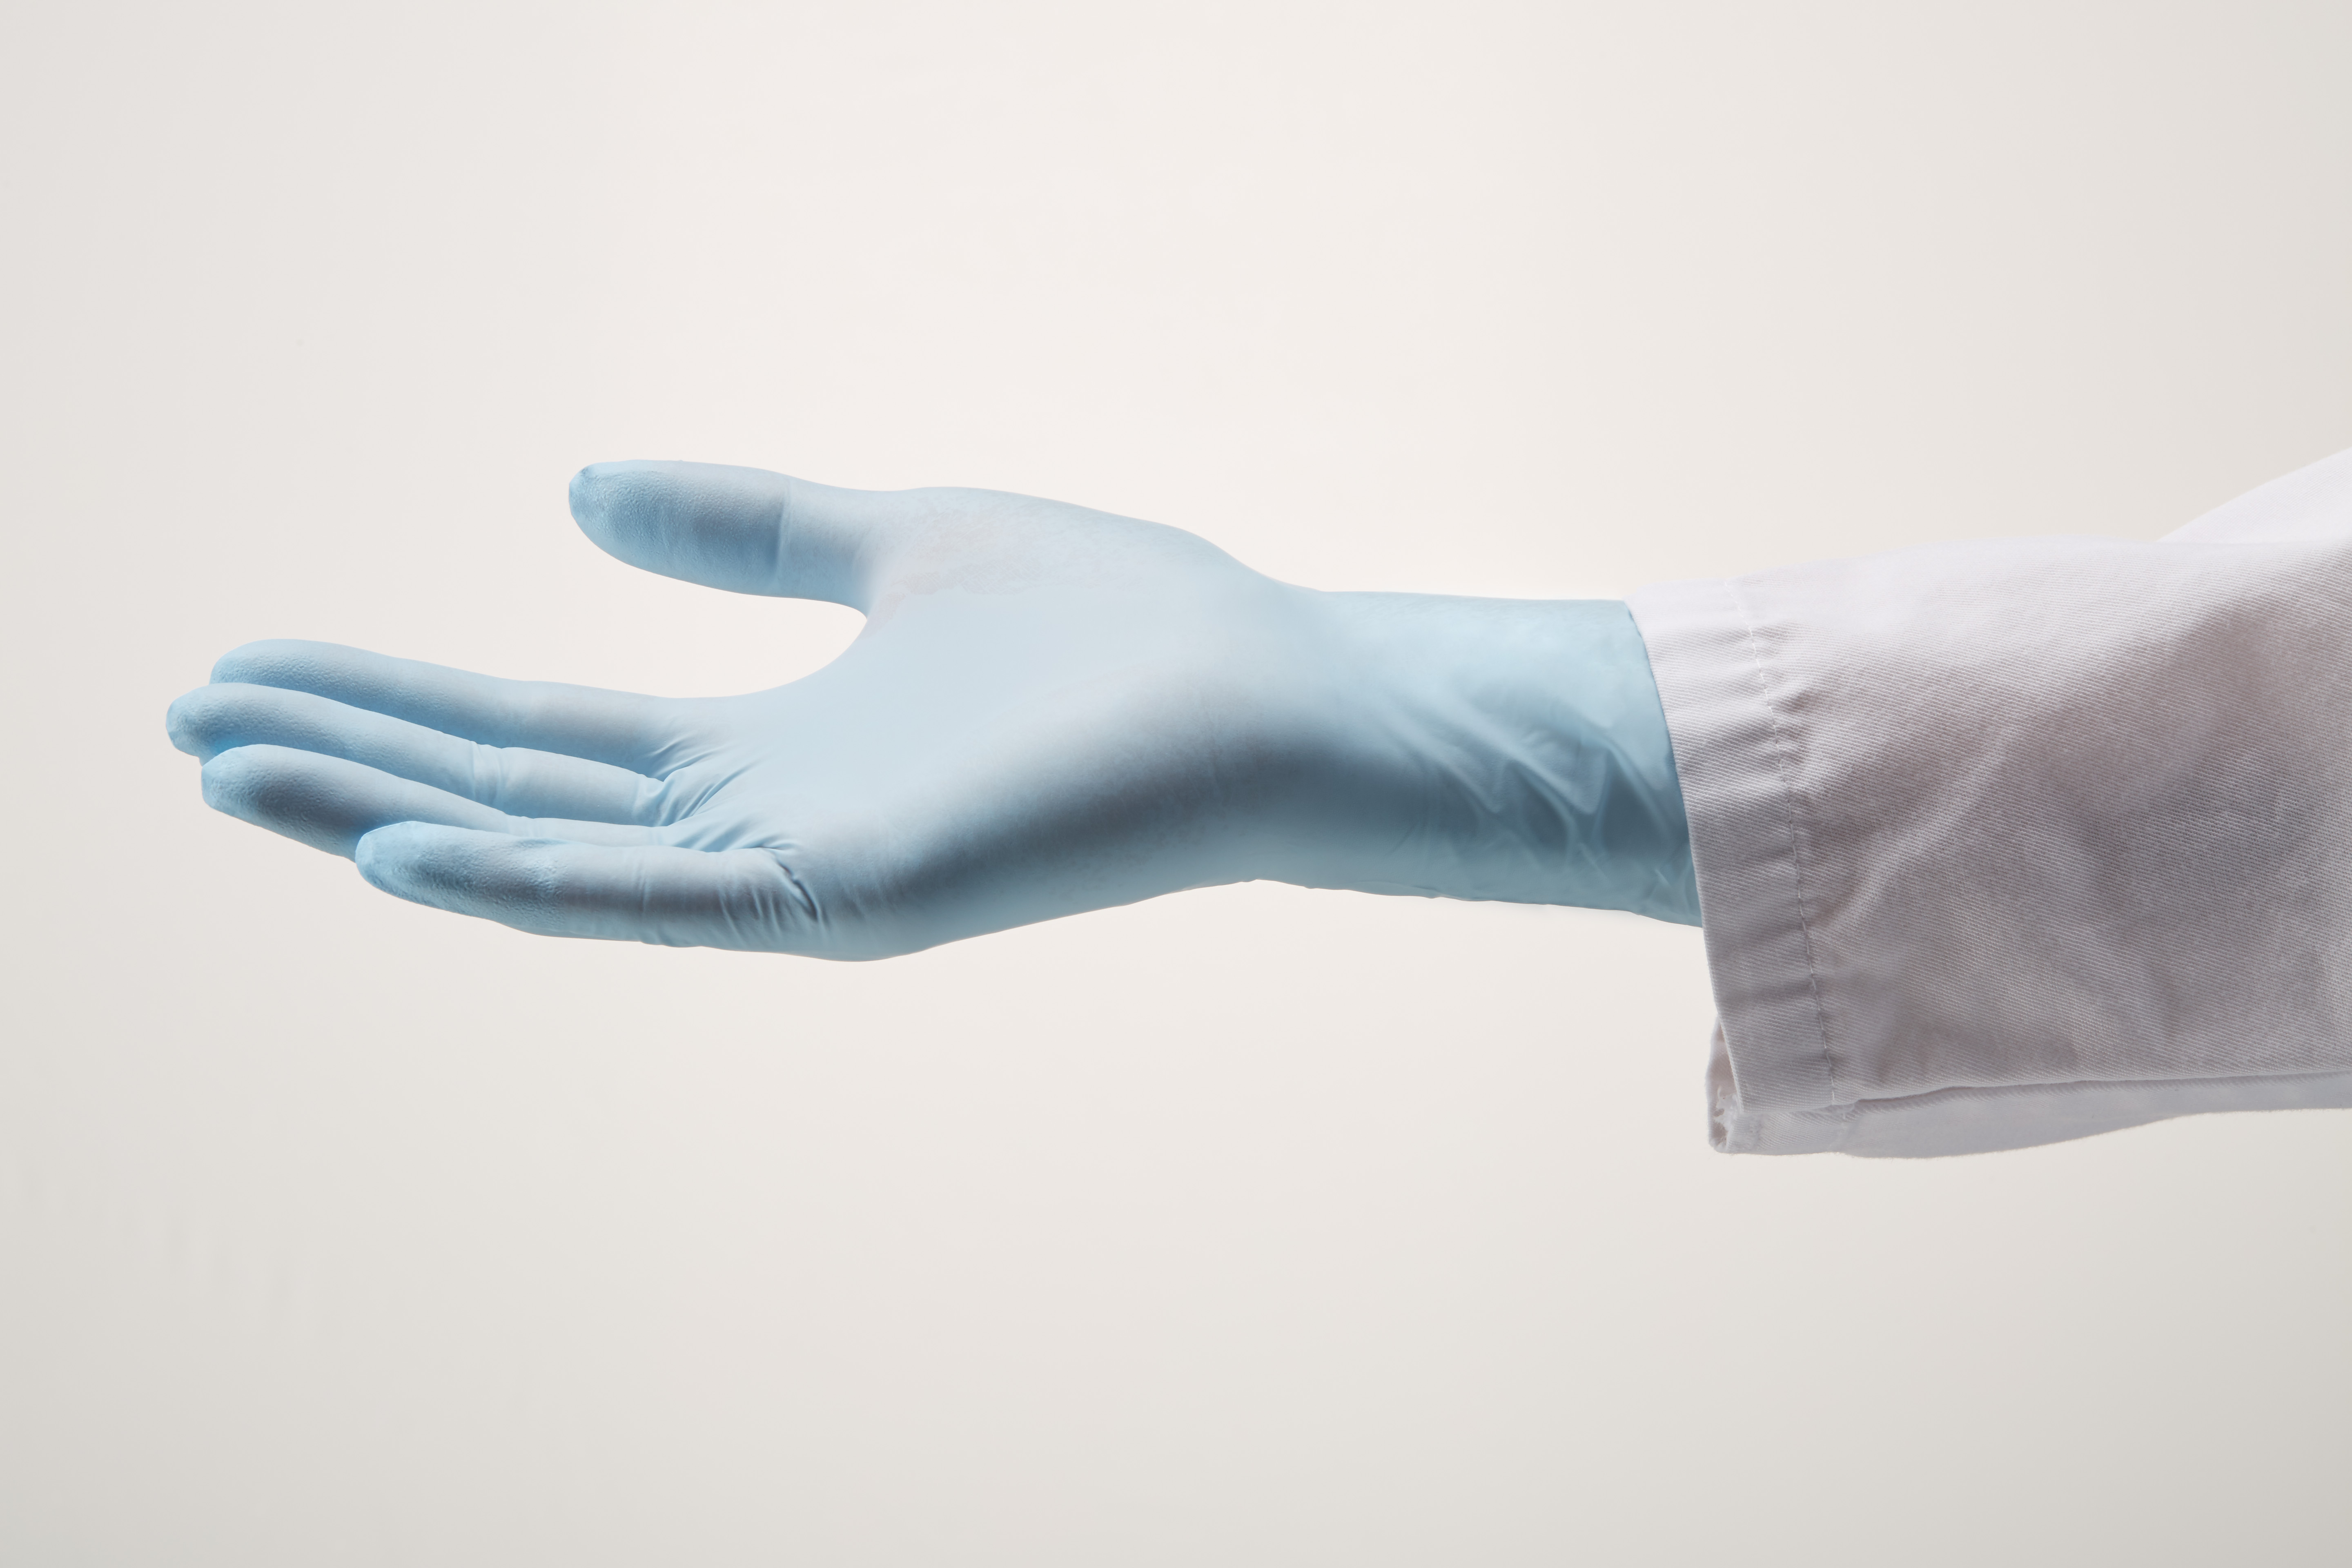 StarGuard COMFORT (feels like Latex)  Nitrile Gloves, Powder Free, Blue, Size XS, Pk/ 10 x 250 gloves